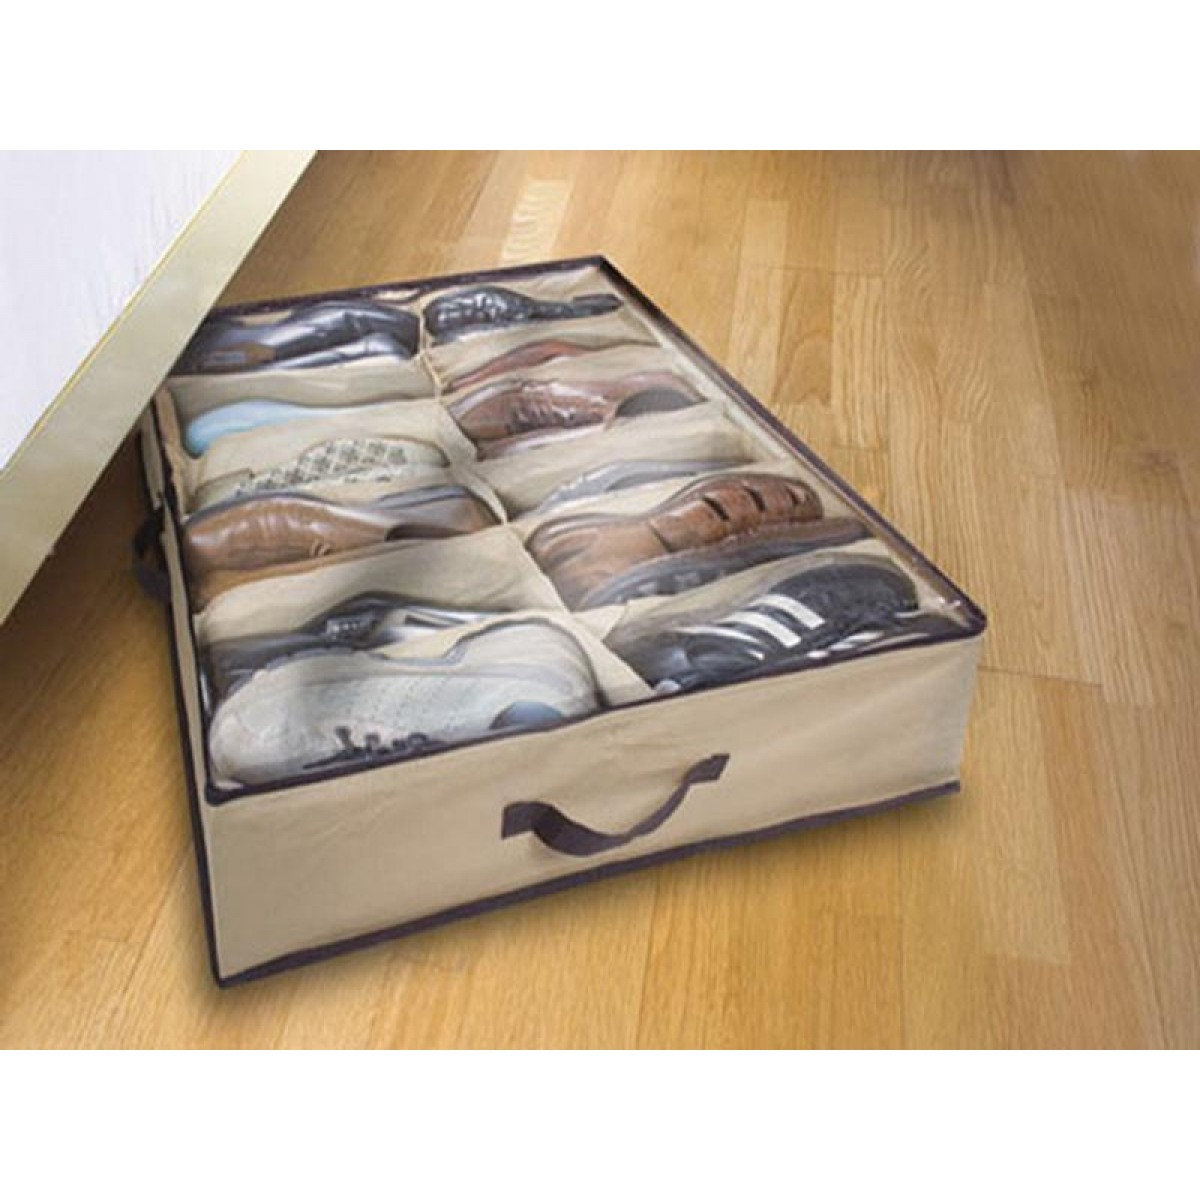 Shoe Storage Under Bed Best Storage Design 2017